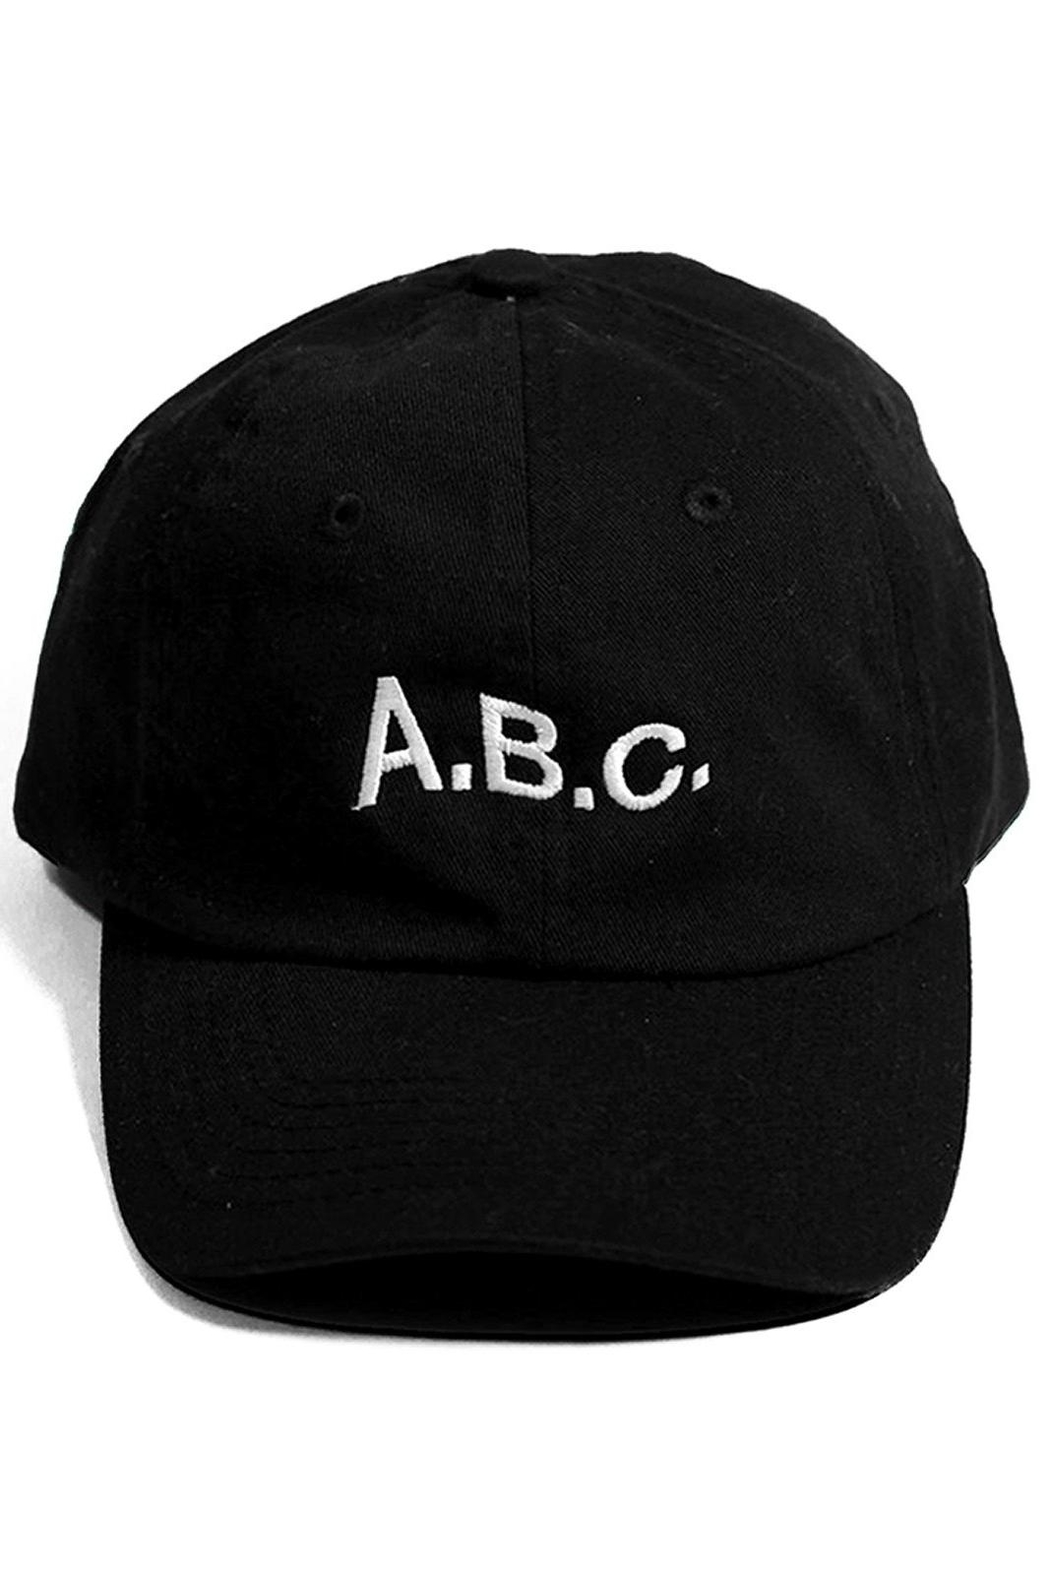 ABC Designs Unisex Dad Hat - Main Image